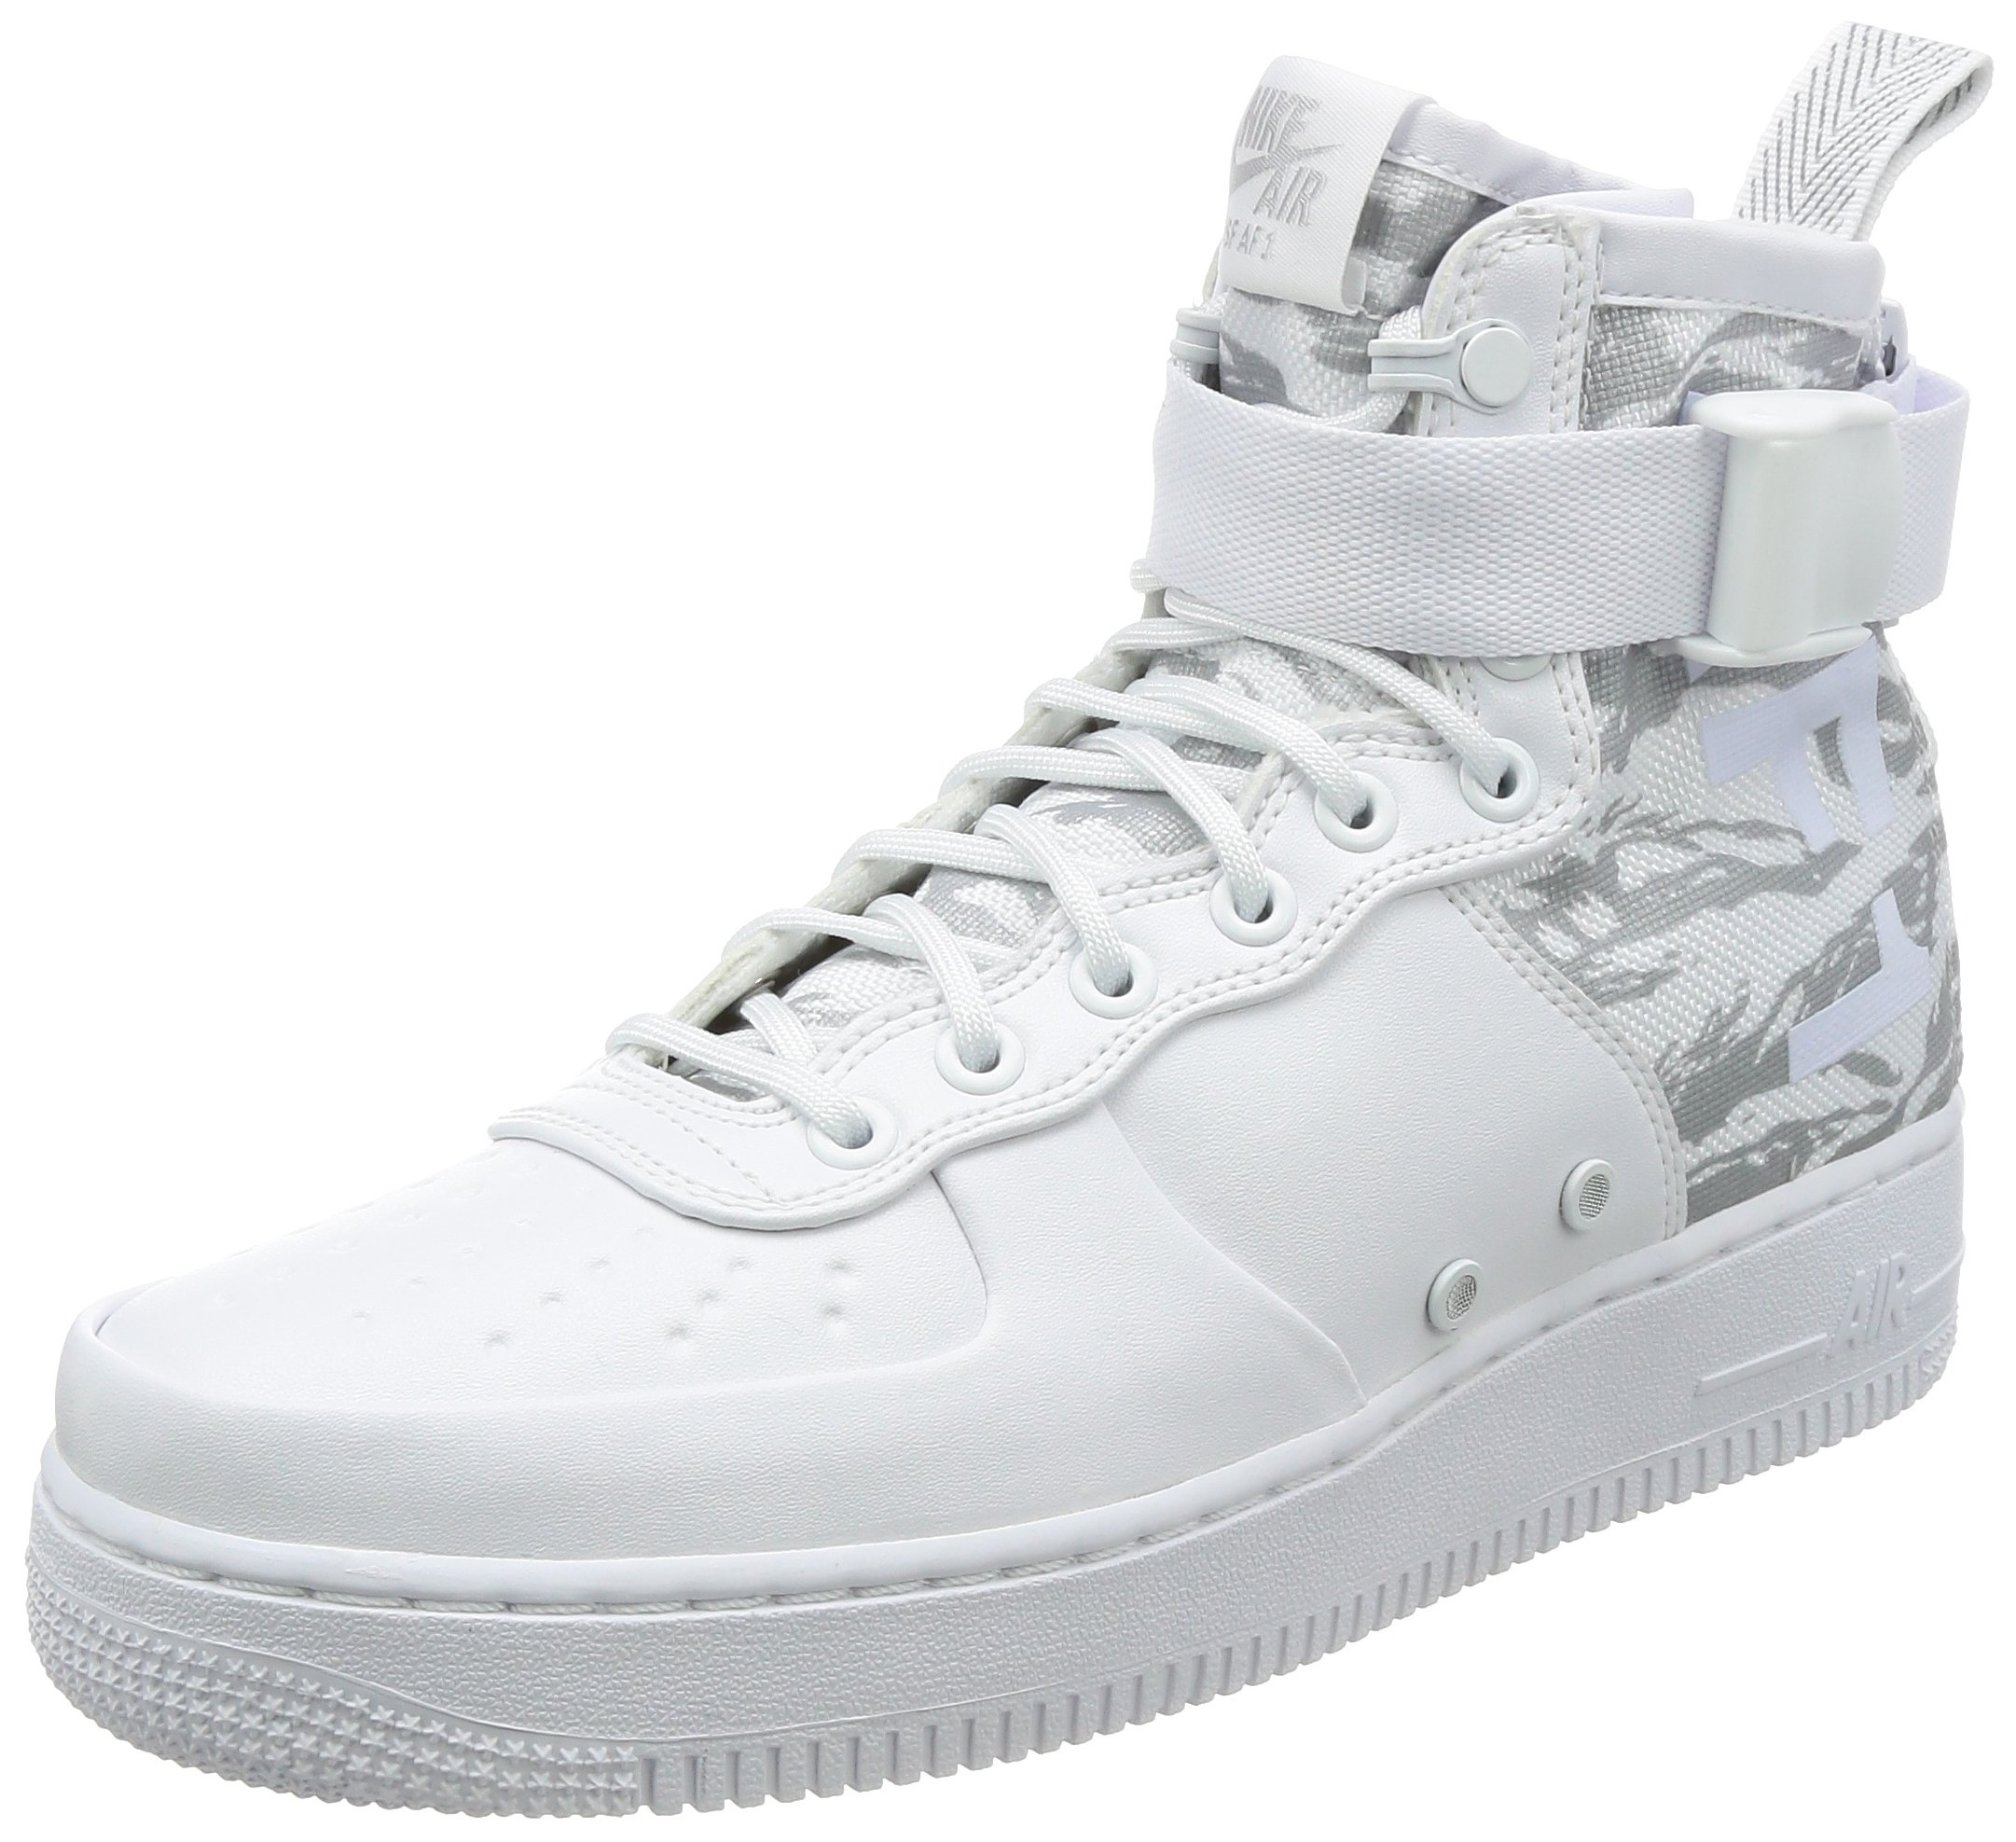 1b9665450431 Galleon - NIKE Mens SF Air Force 1 Winter Mid Premium Shoes White White  AA1129-100 Size 9